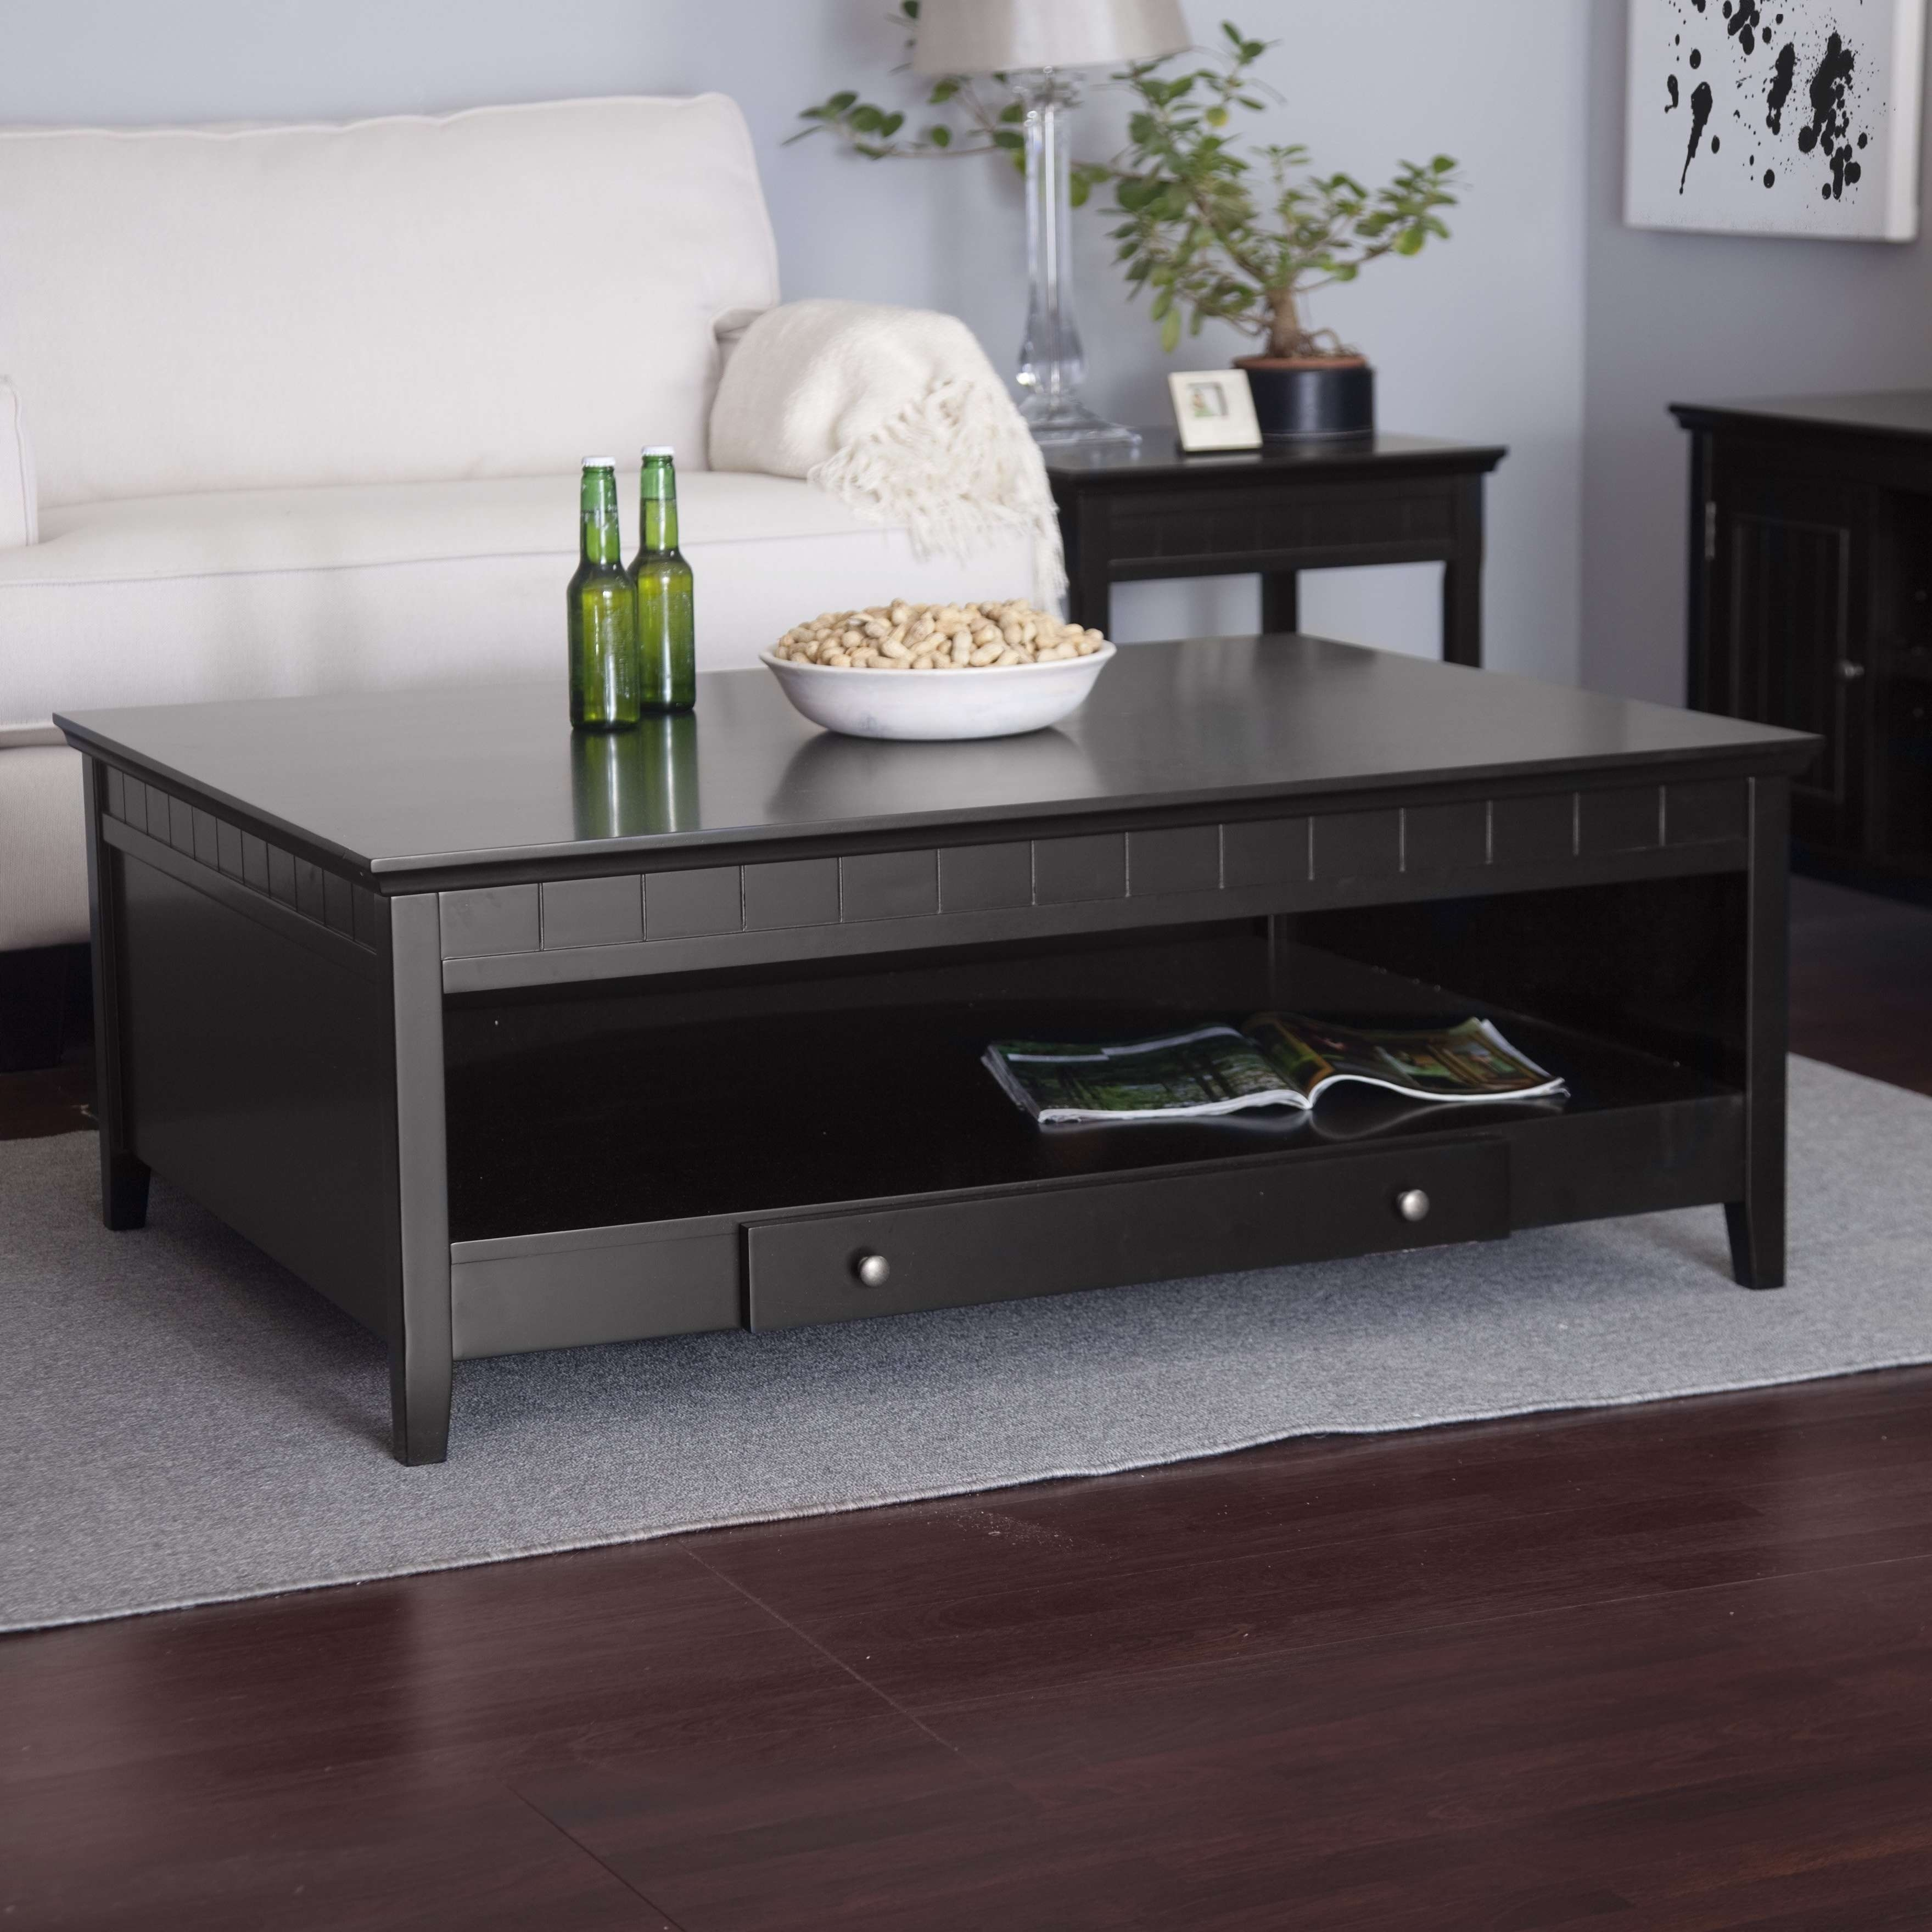 Most Current Black Coffee Tables With Storage For Coffee Table Black Coffee Table Image Of Trunk Tables Storage (View 16 of 20)